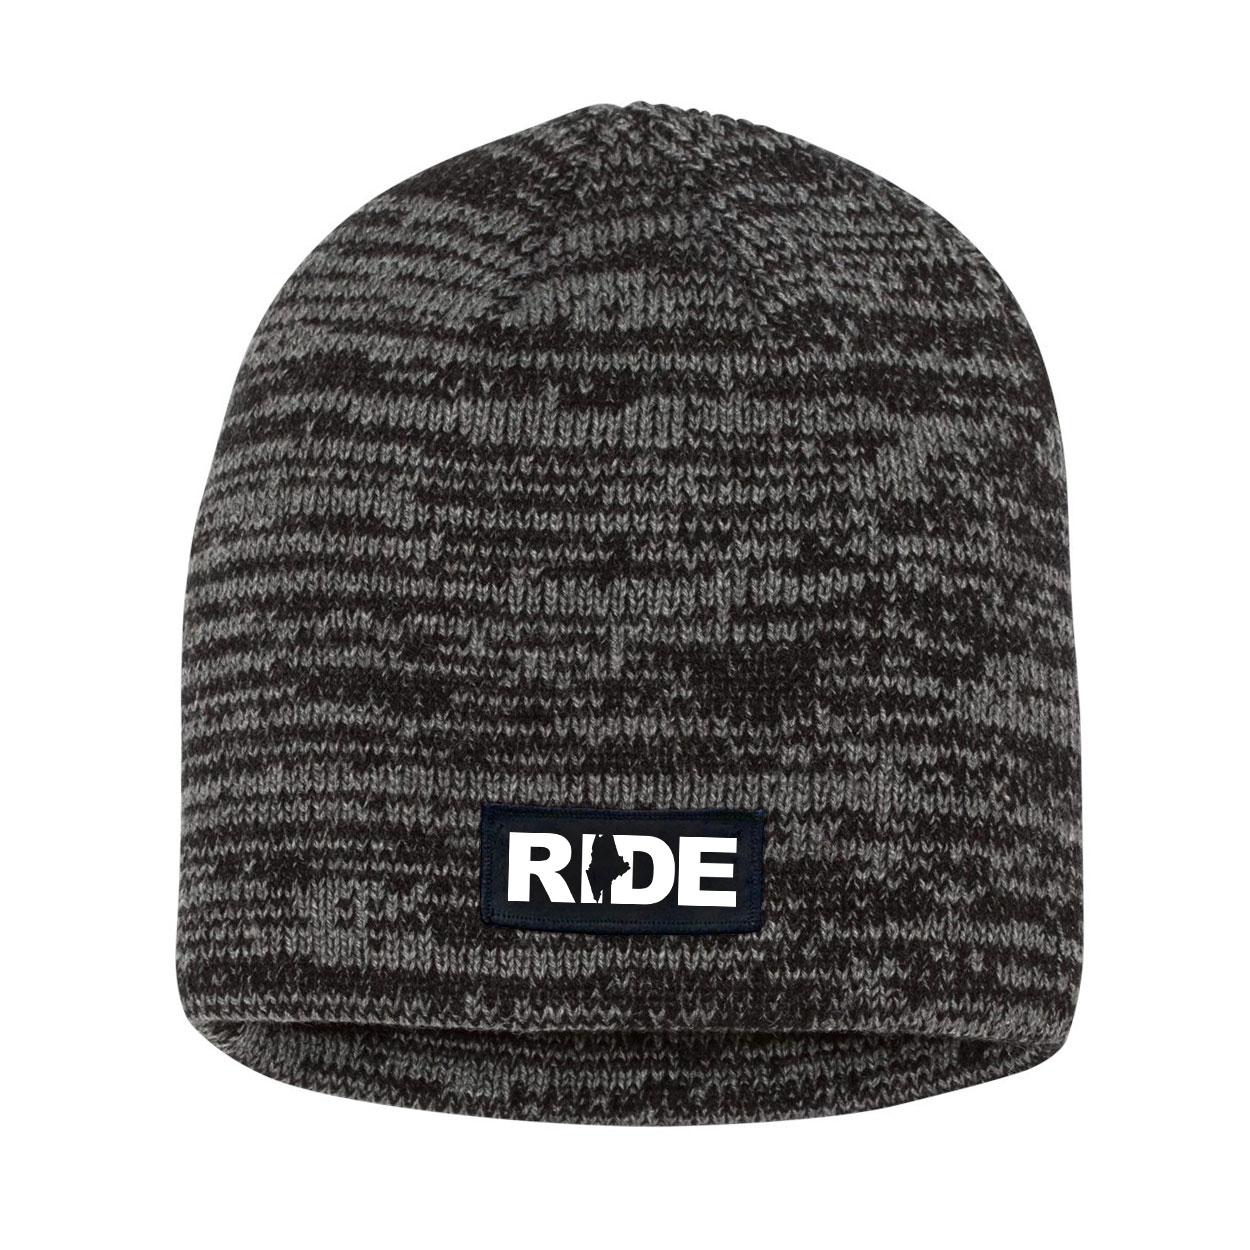 Ride Maine Night Out Woven Patch Skully Marled Knit Beanie Black/Gray (White Logo)